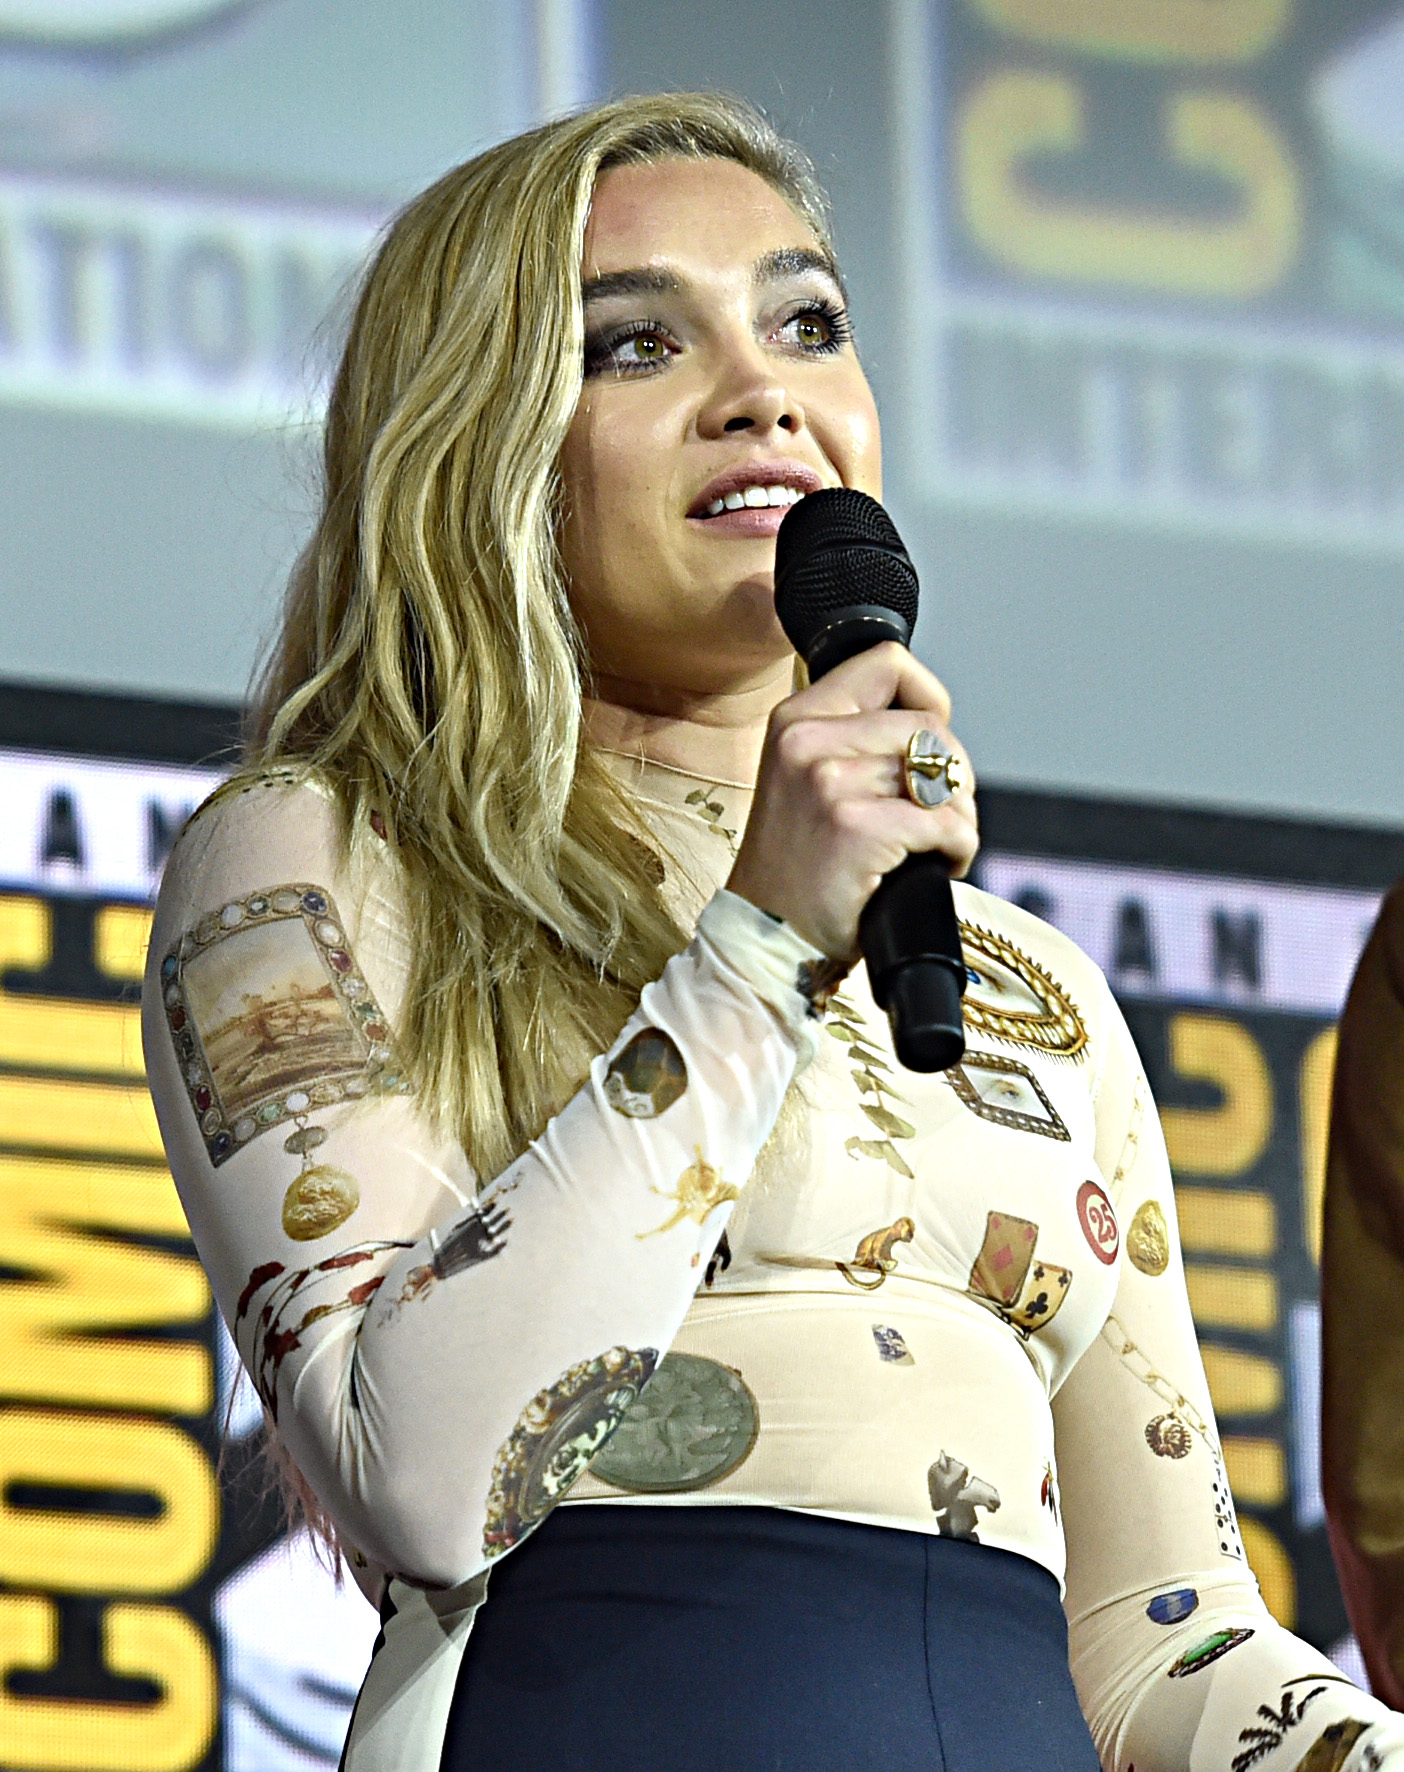 Florence Pugh at an event for Black Widow (2021)